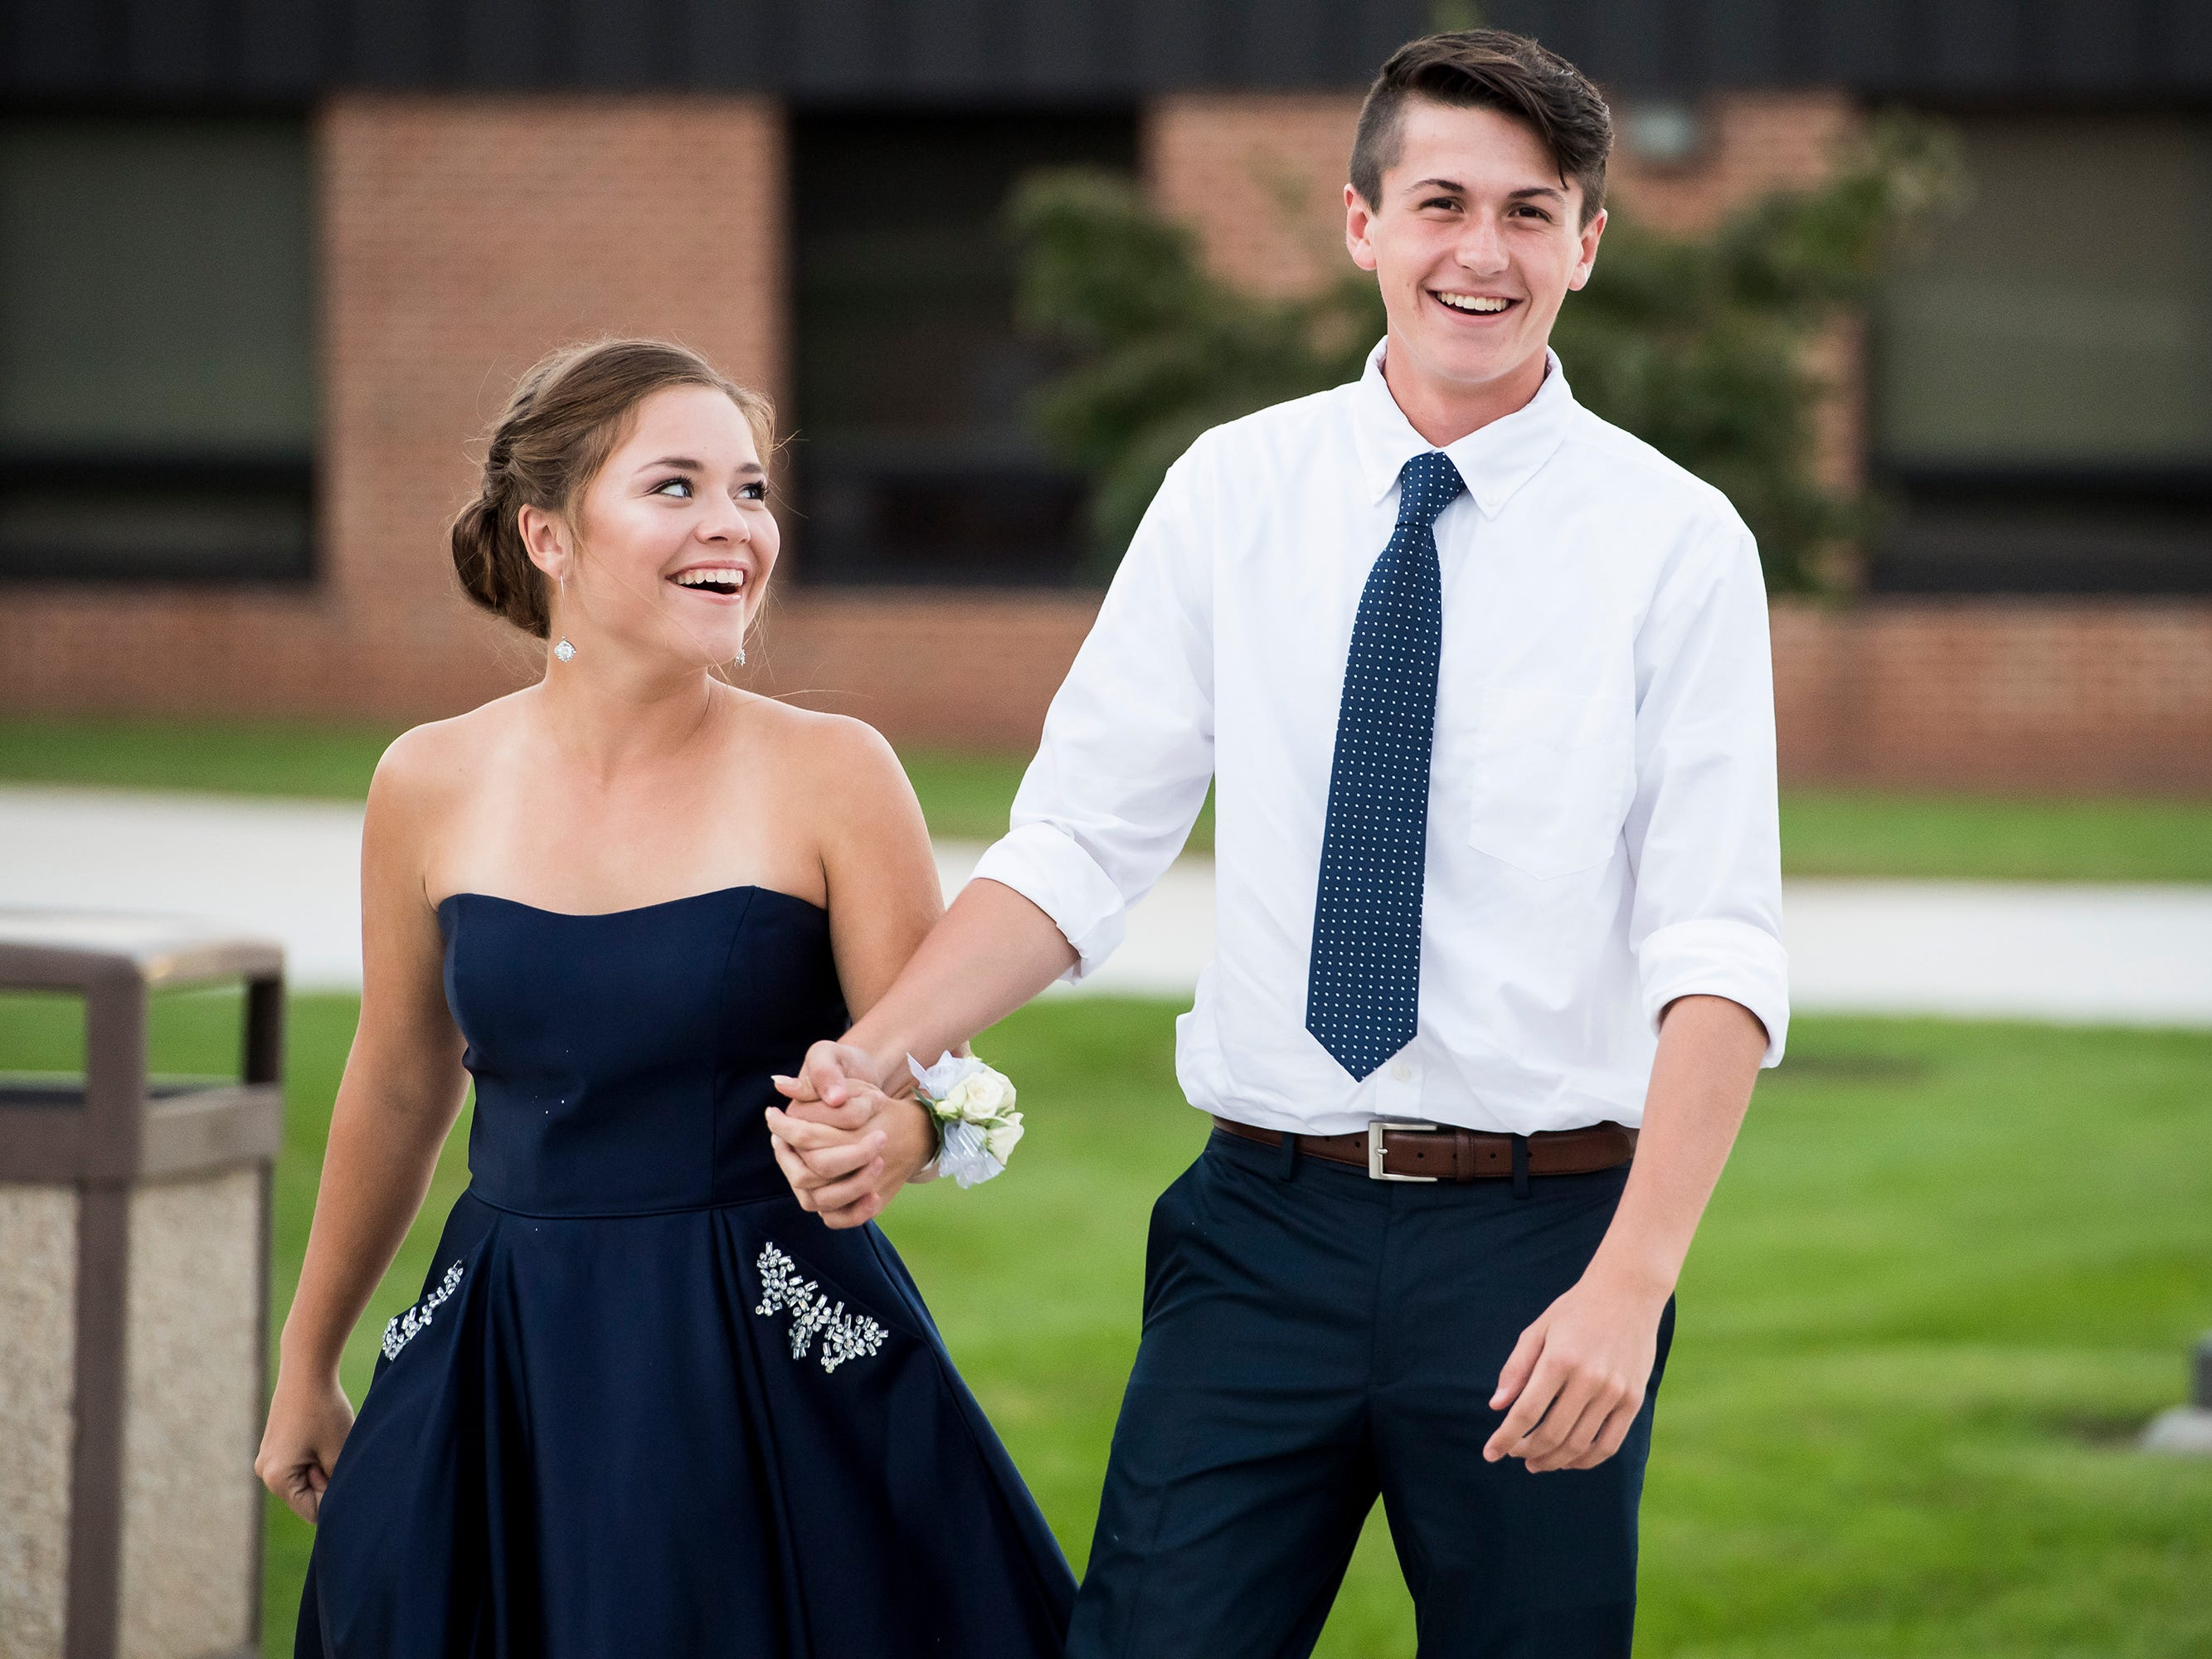 Students arrive at New Oxford High School's homecoming dance on Saturday, September 29, 2018.